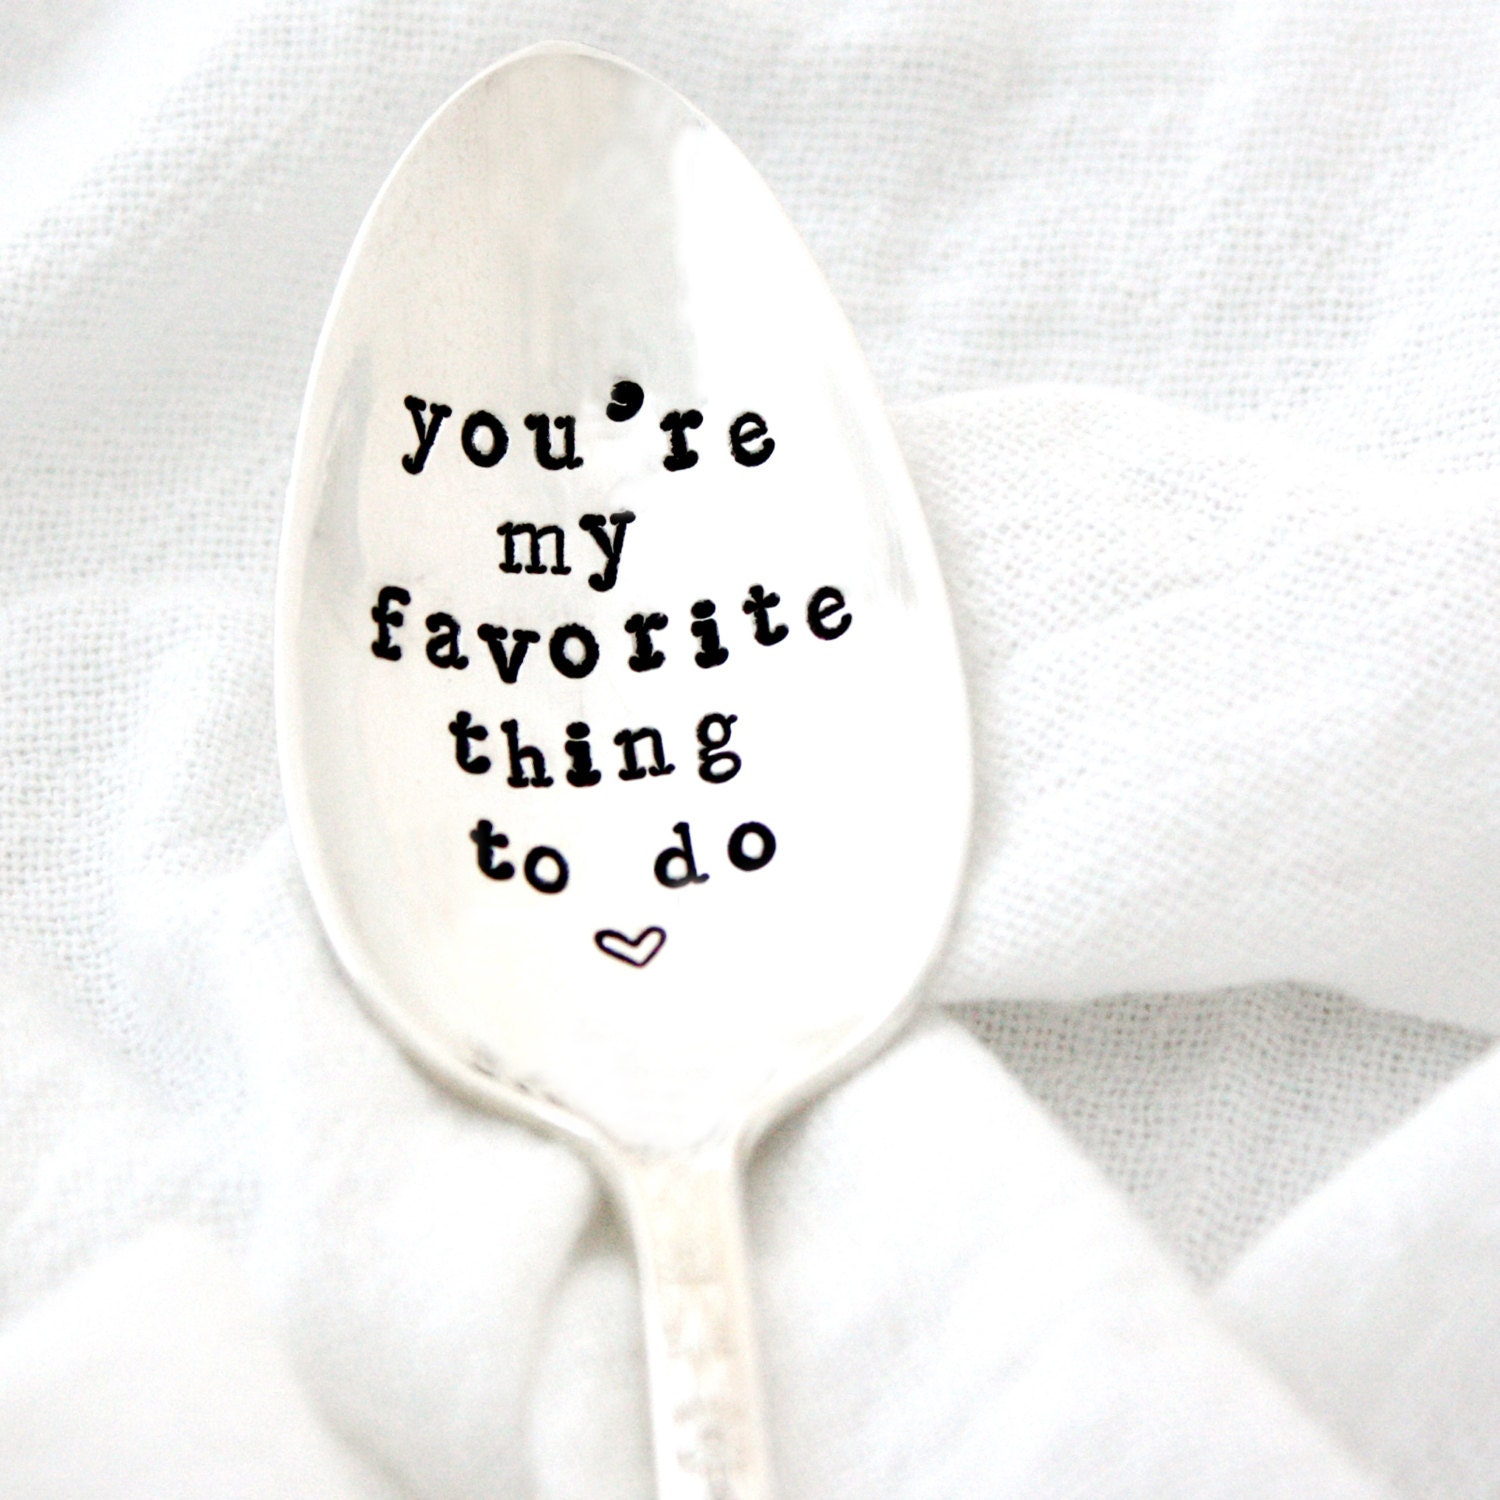 You're My Favorite Thing To Do. Hand stamped coffee spoon for a cheeky valentines day gift.